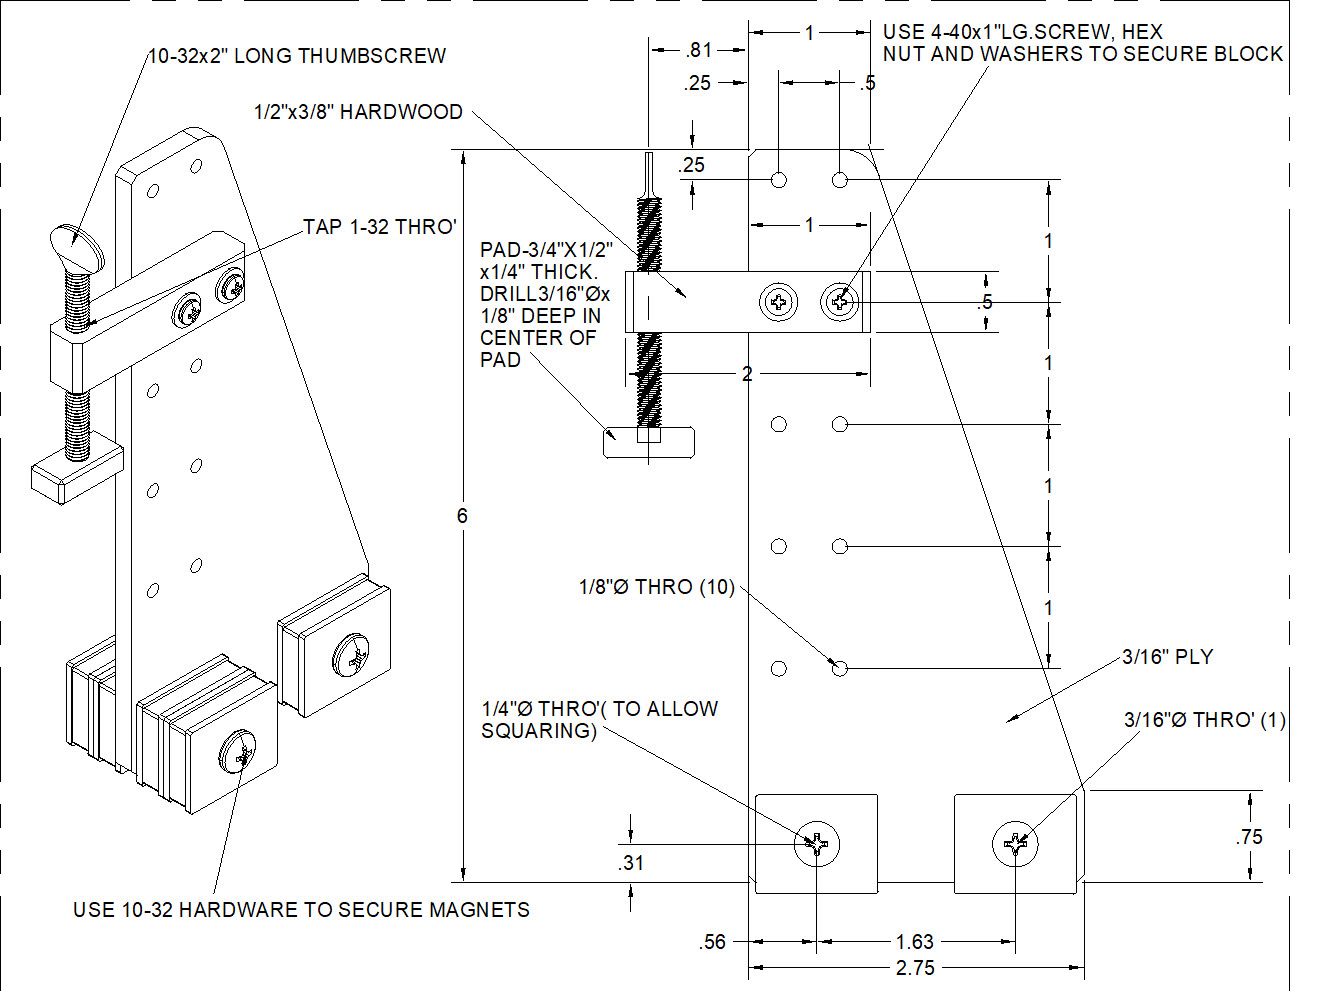 Drawing of Magnetic Hold Down for building RC airplanes